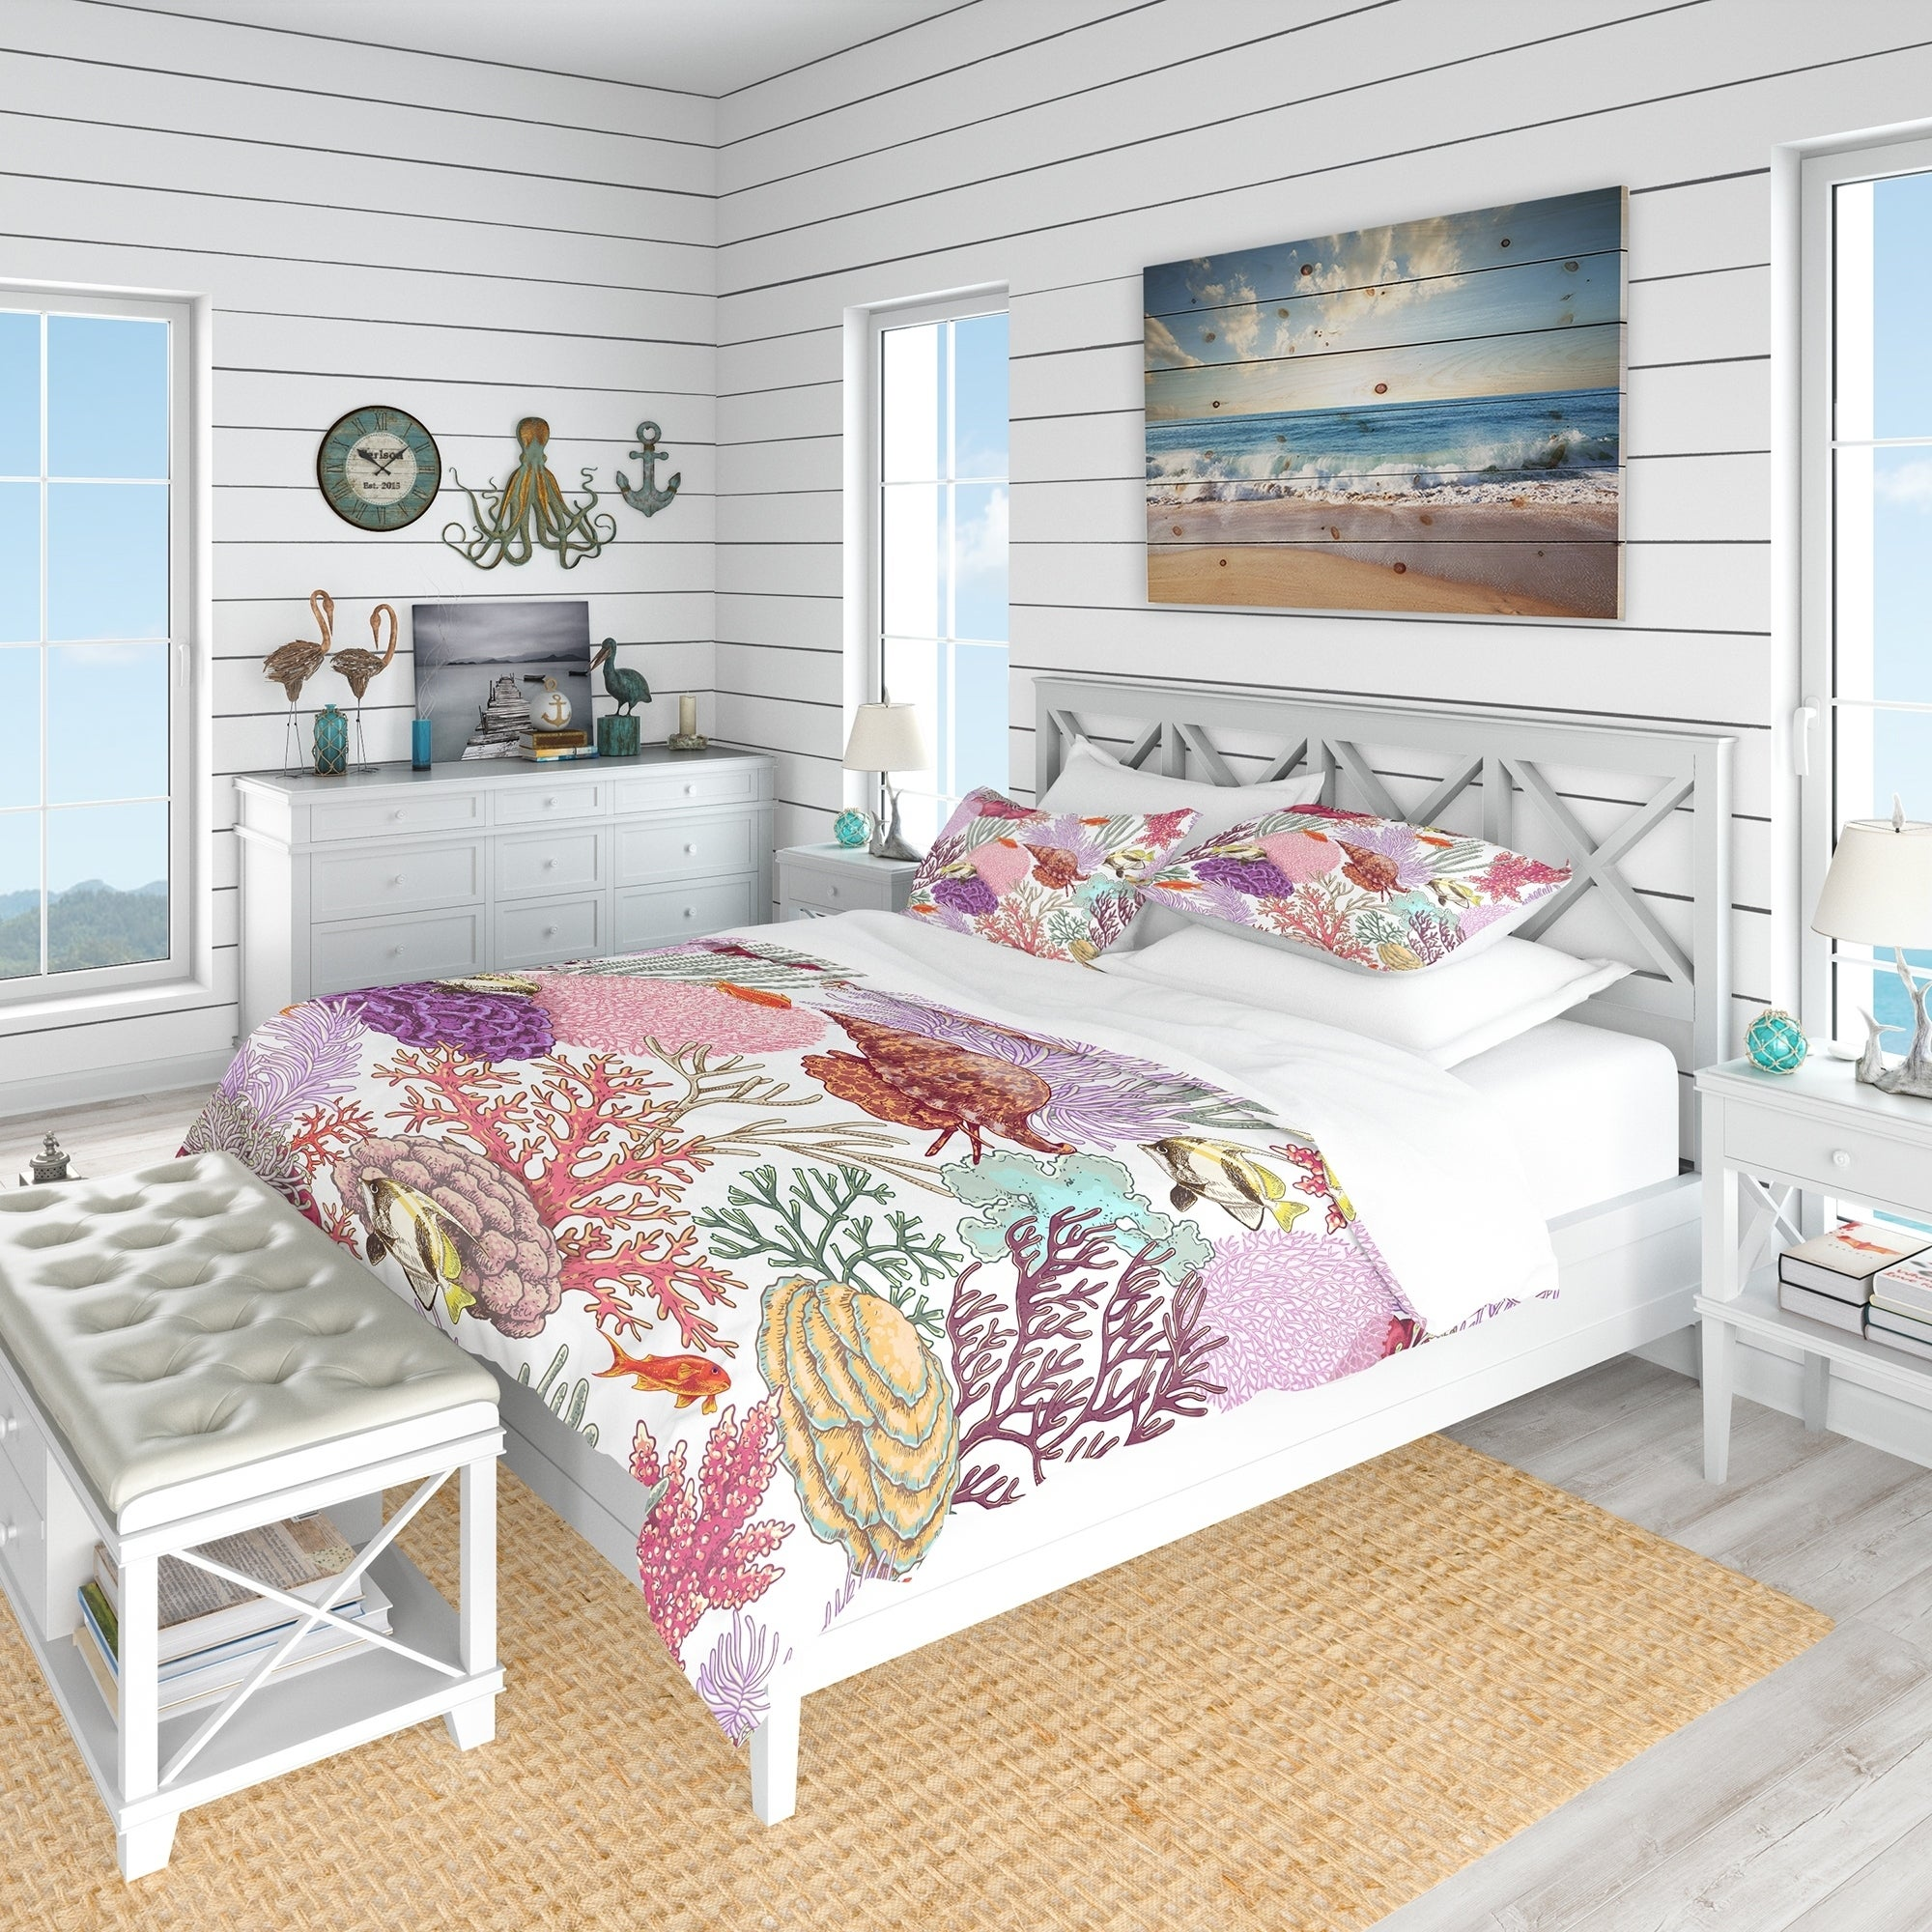 Shop Black Friday Deals On Designart Coral Reef And Fishes Pattern Nautical Coastal Bedding Set Duvet Cover Shams Overstock 23507180